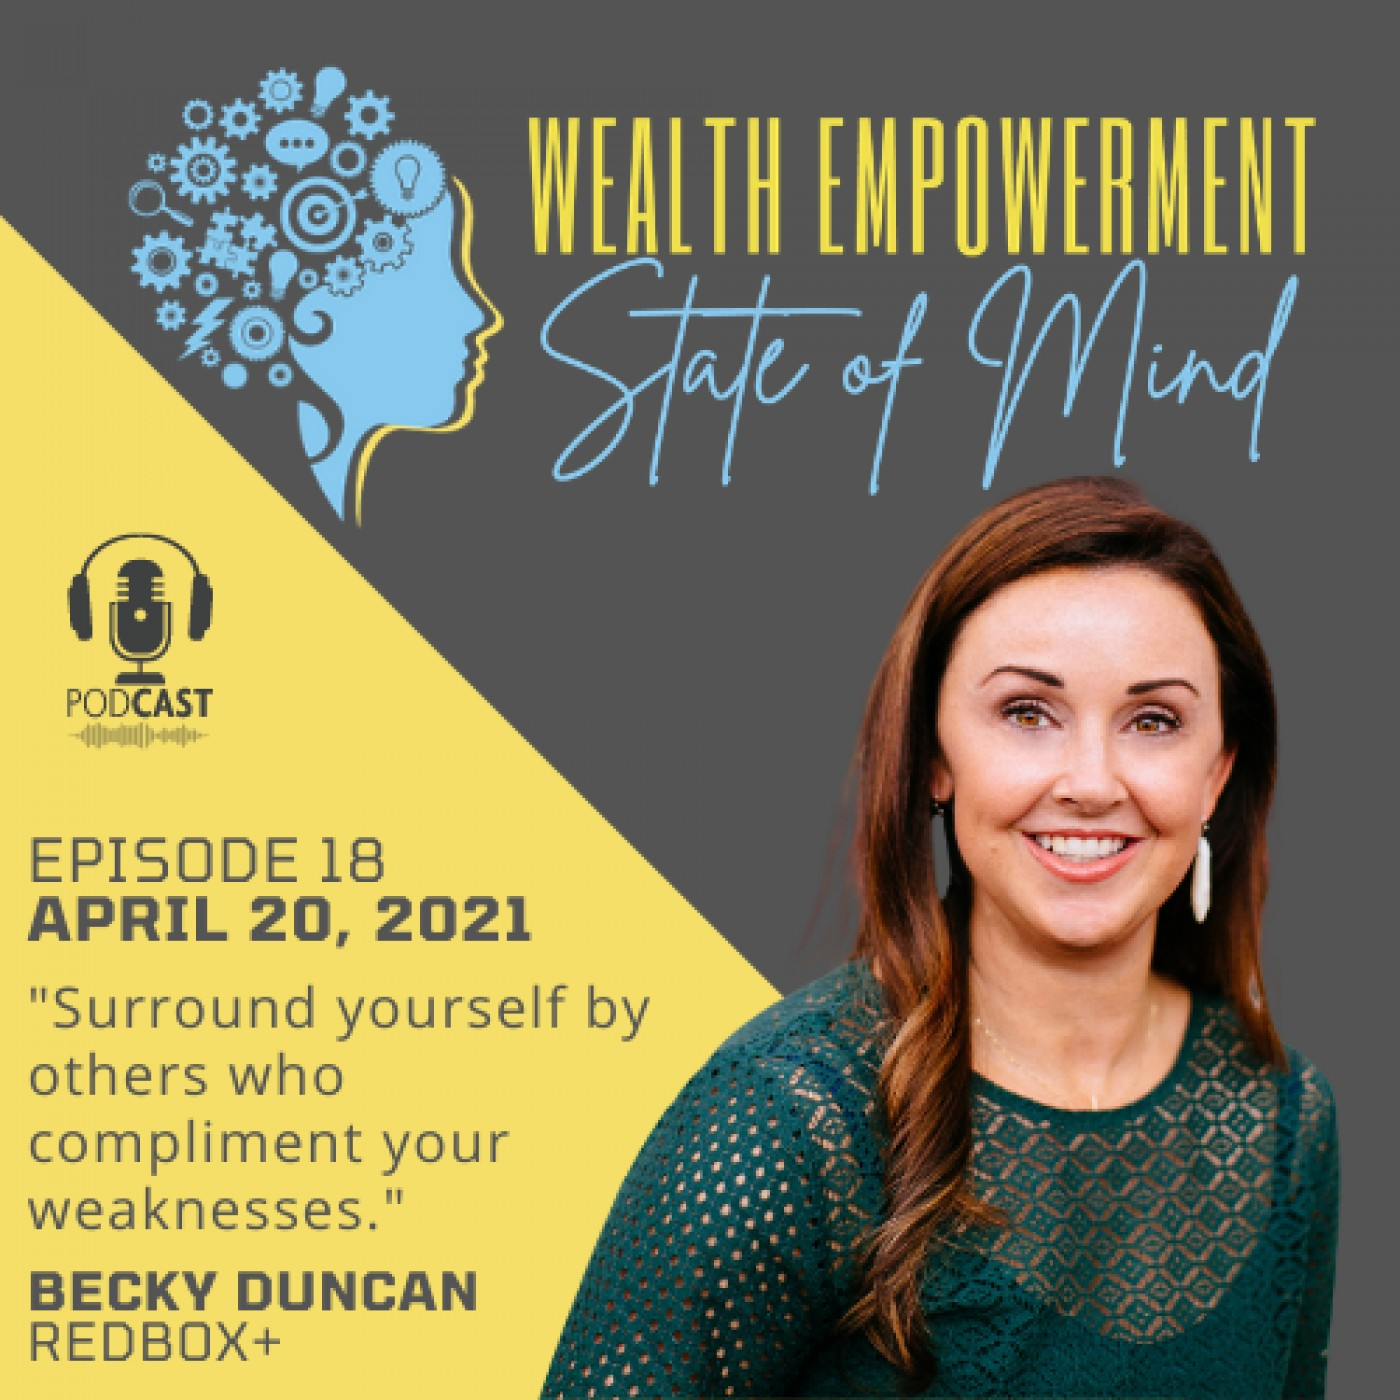 Episode 18: Becky Duncan - Red Box Plus & New Wine Girl